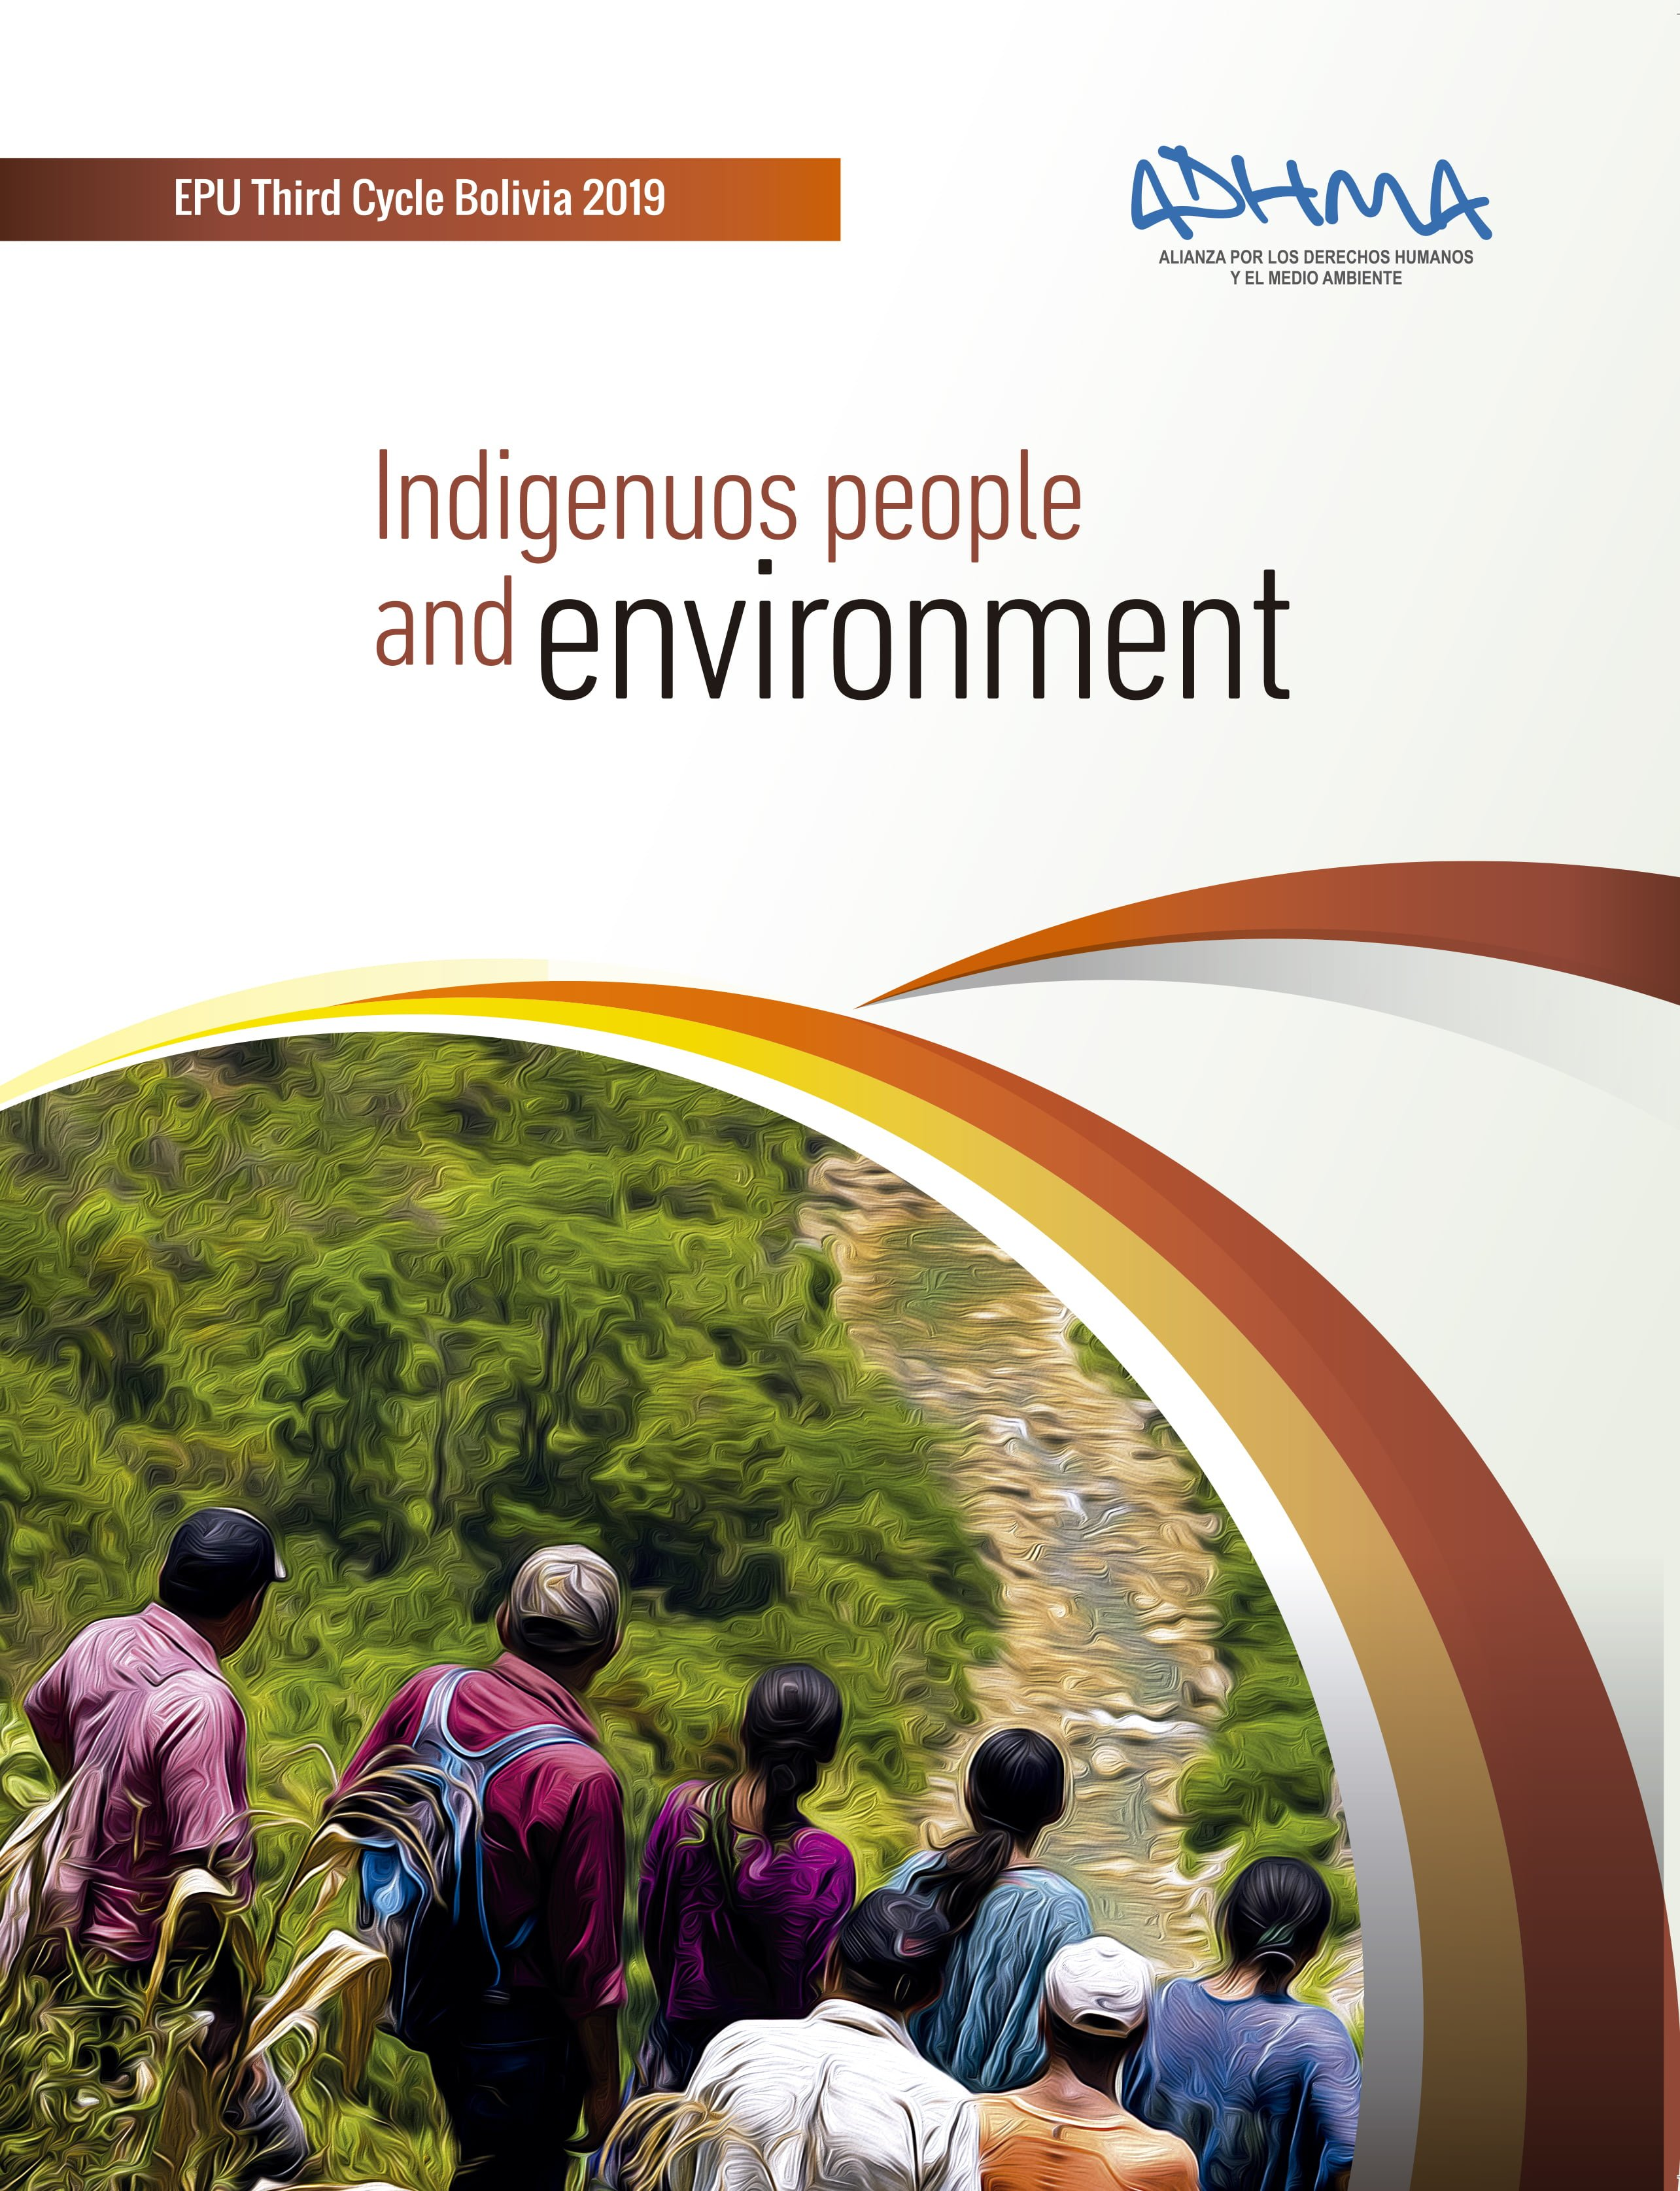 Indigenous peoples and environment – Report: UPR Third Cycle Bolivia 2019